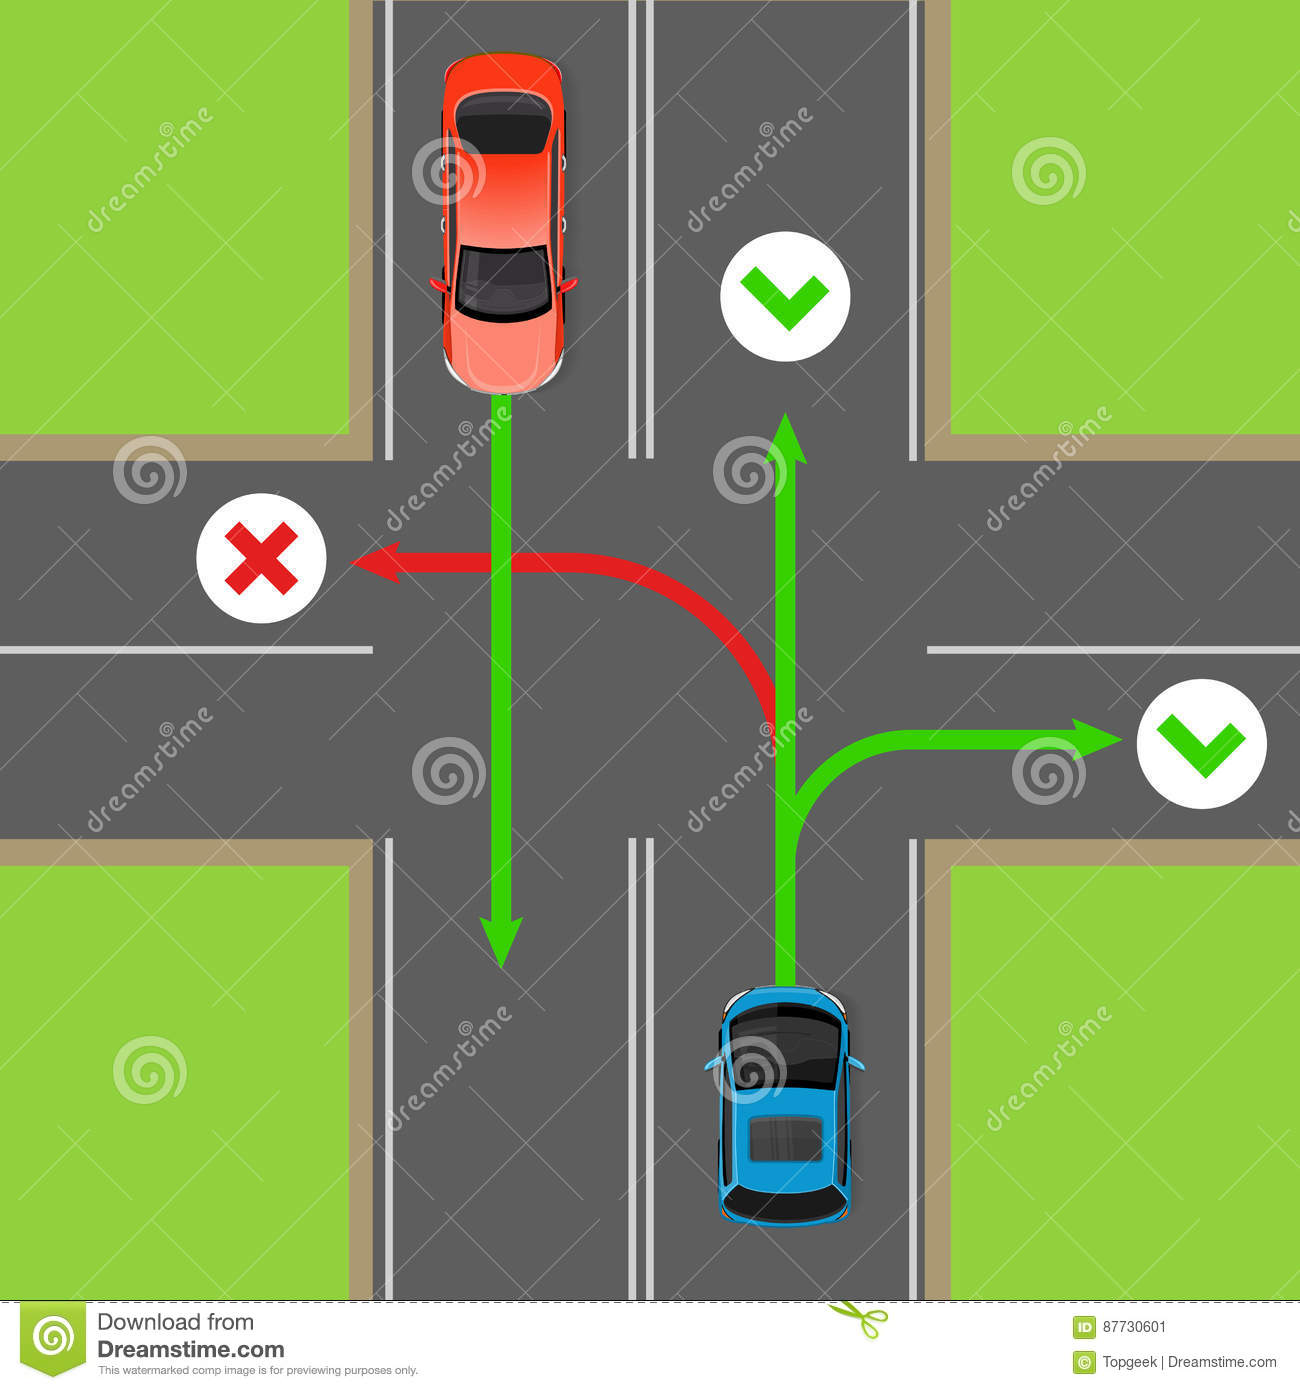 Intersection Wiring Diagram Trusted Diagrams Sample Of A Four Way Diy Enthusiasts Vehicle Accident Templates